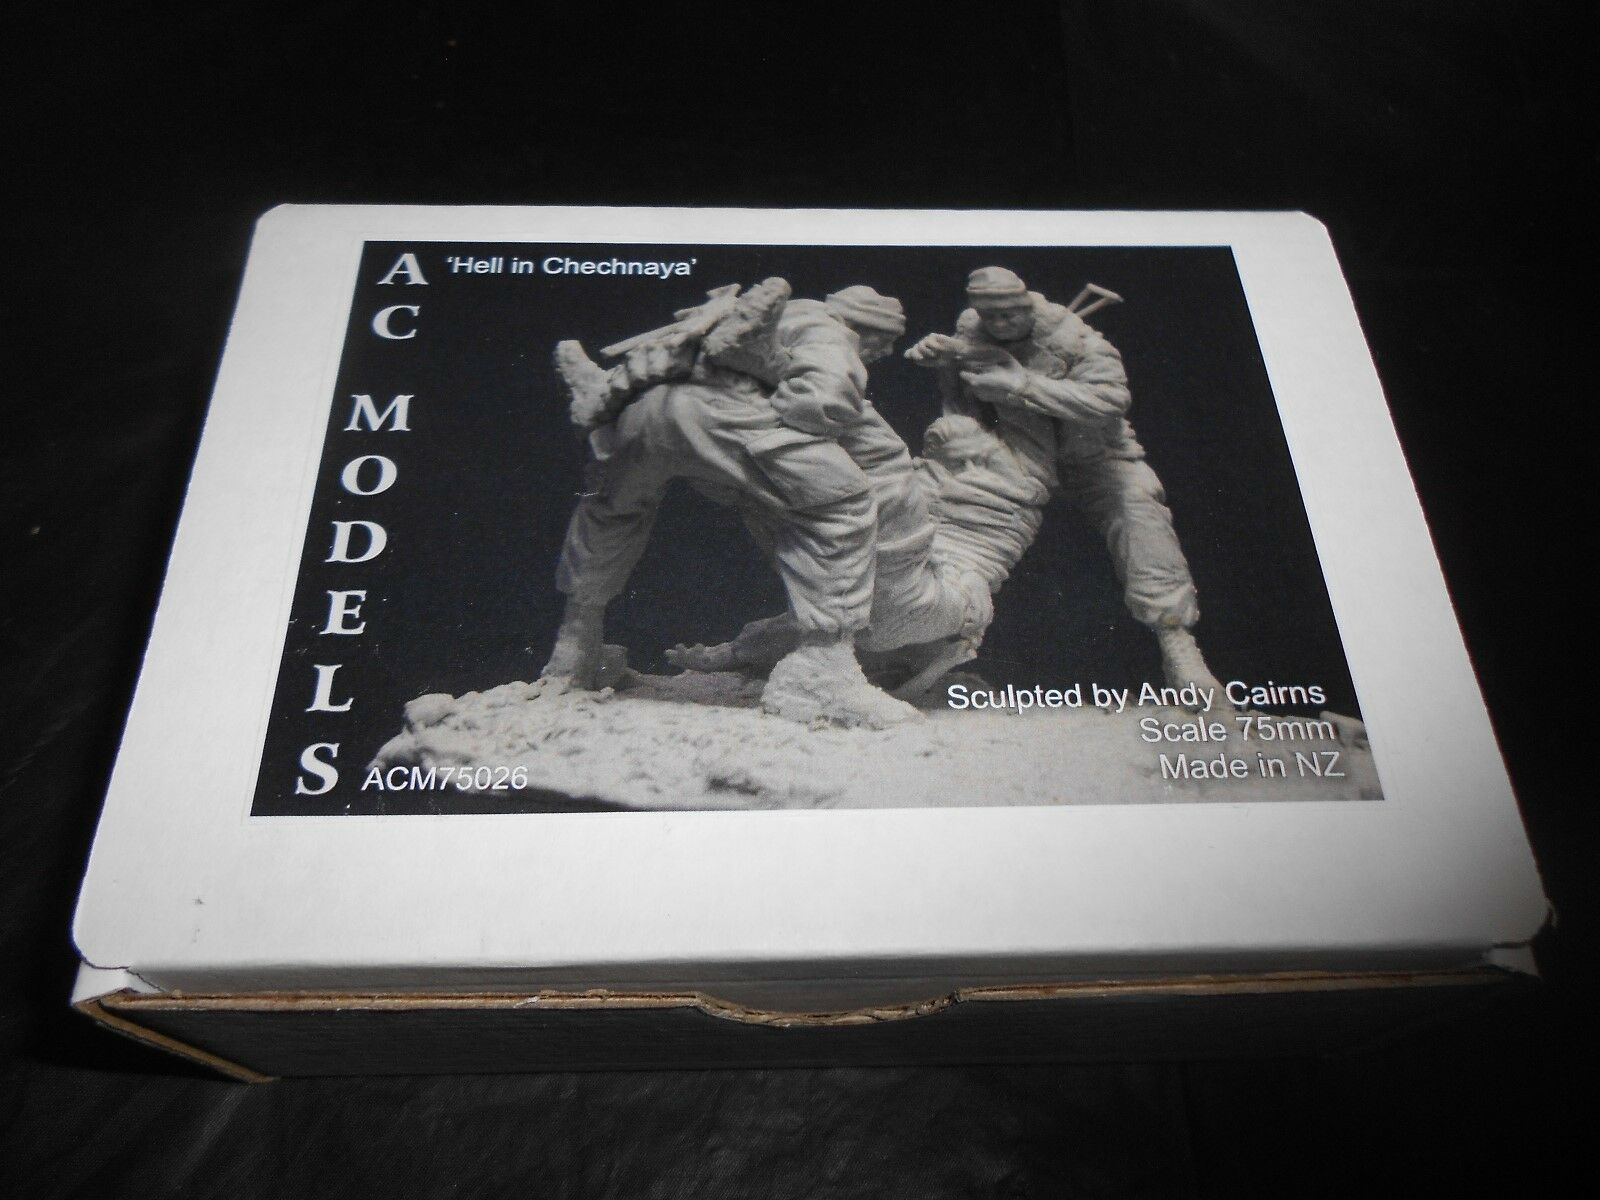 AC MODELS ACM75026 75mm  HELL IN CHECHNAYA  RESIN FIGURE KIT